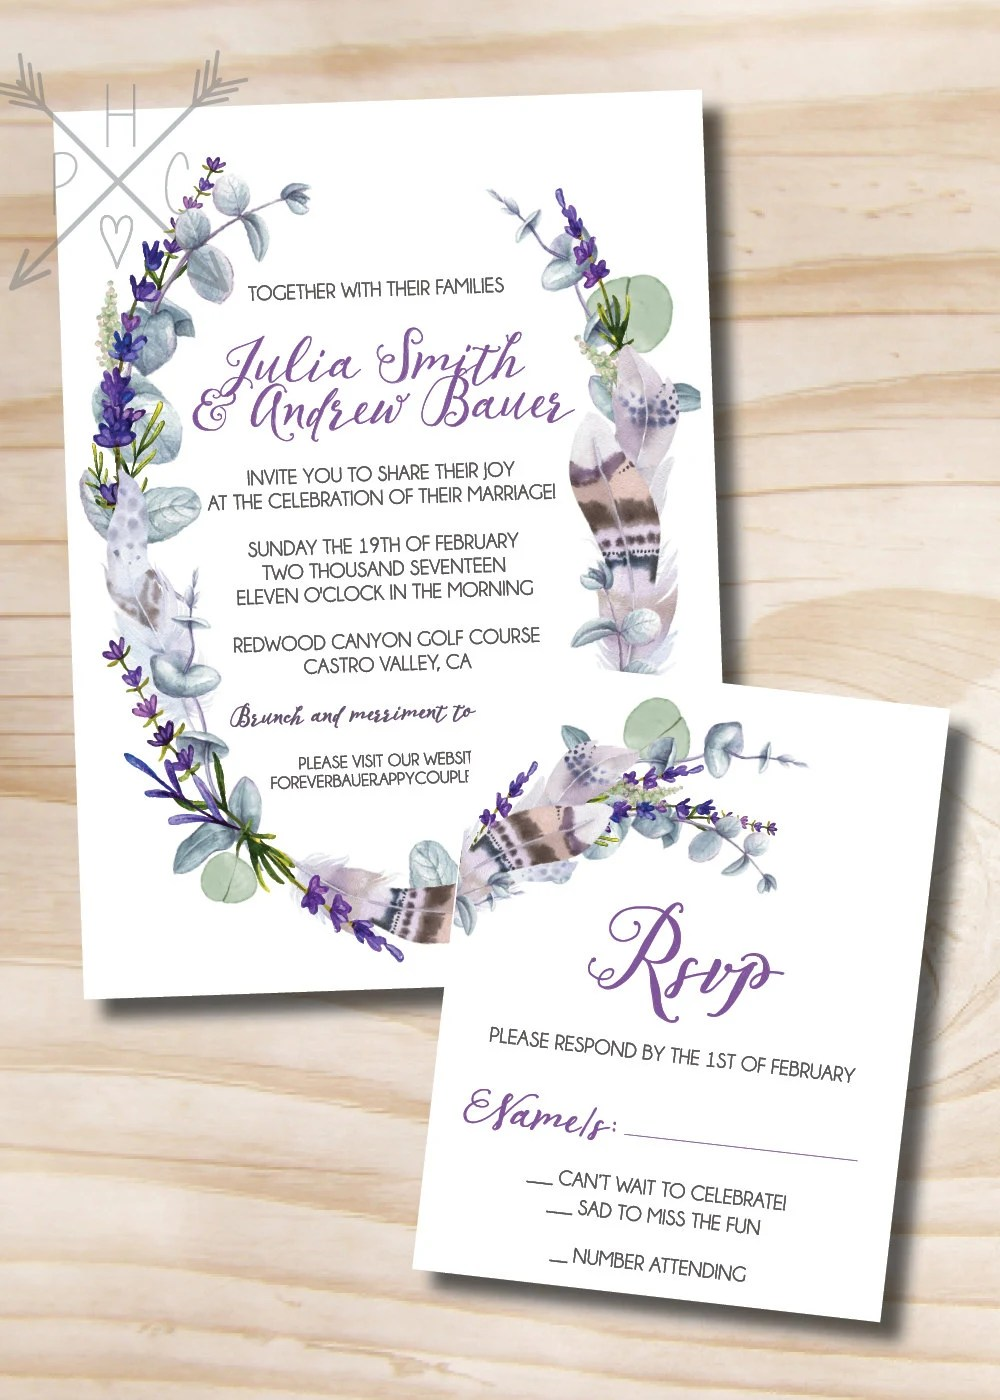 Rustic Feather, Eucalyptus and Lavender Wedding Invitation and